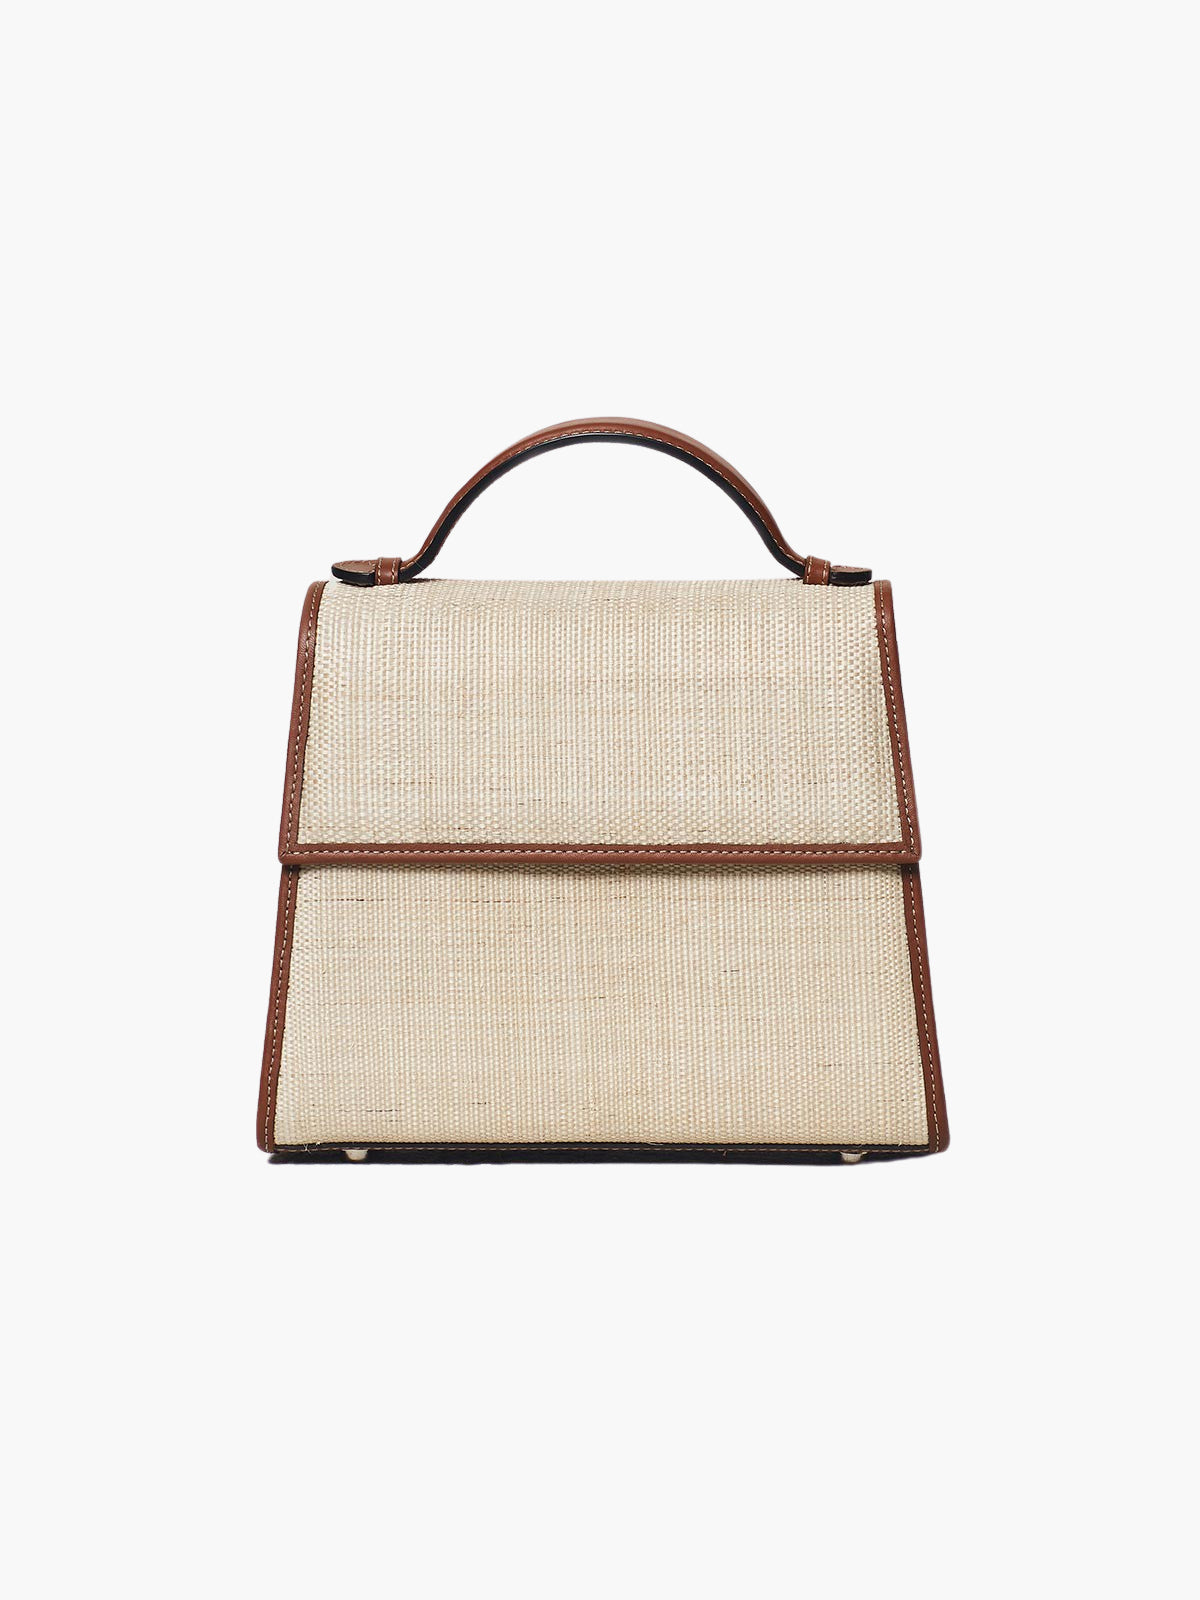 Medium Top Handle Bag | Cognac Woven